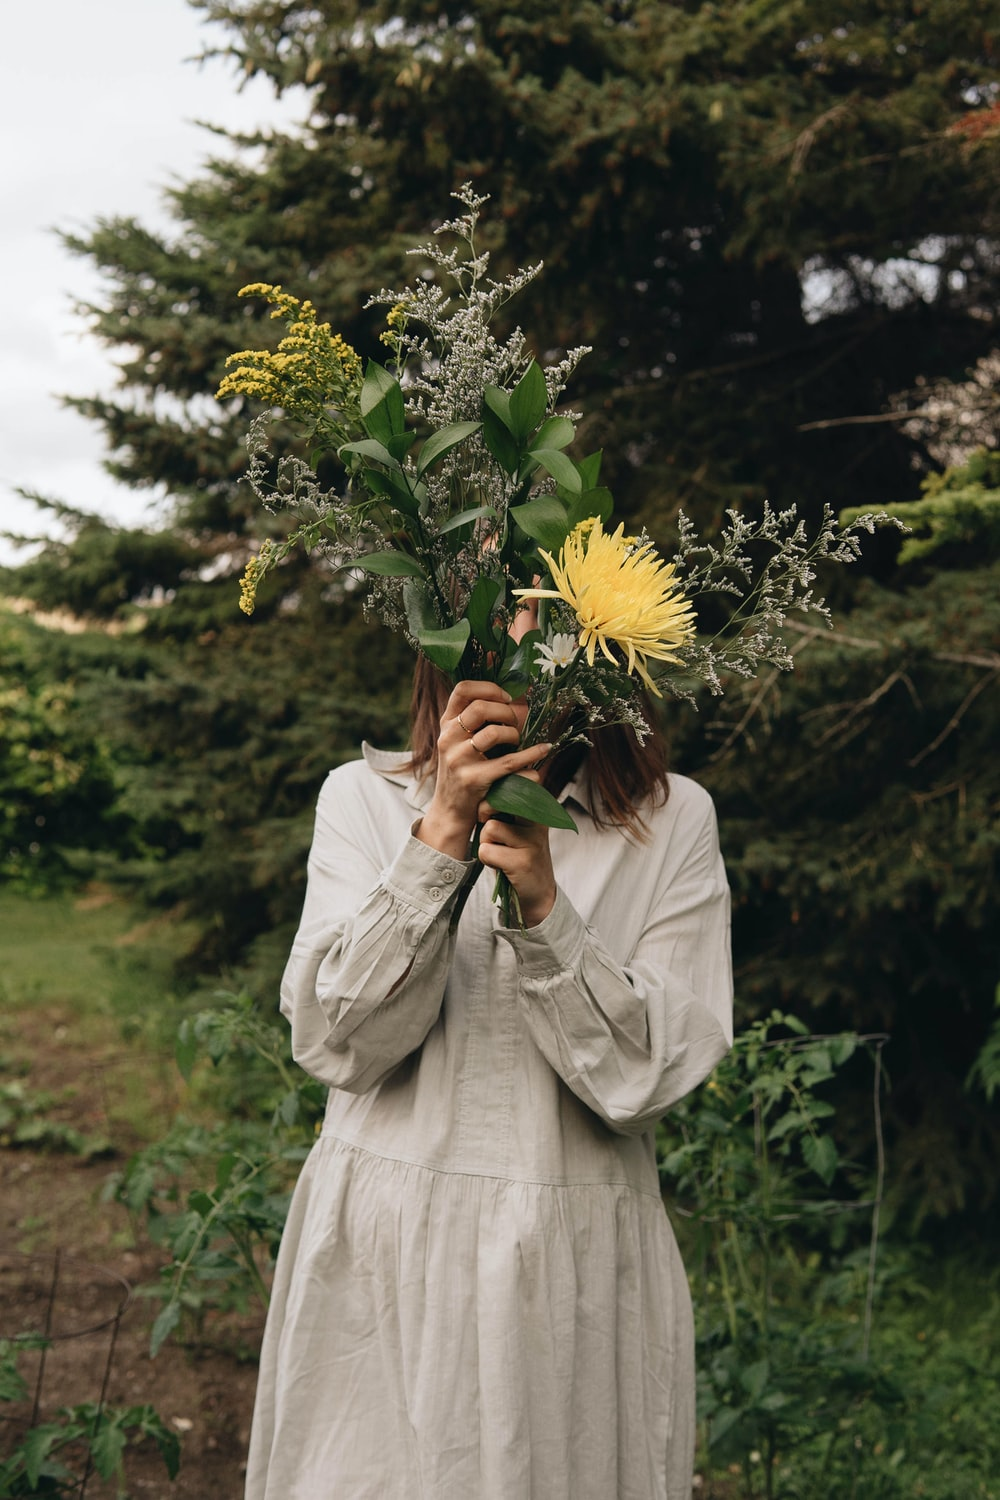 woman in white dress holding sunflower